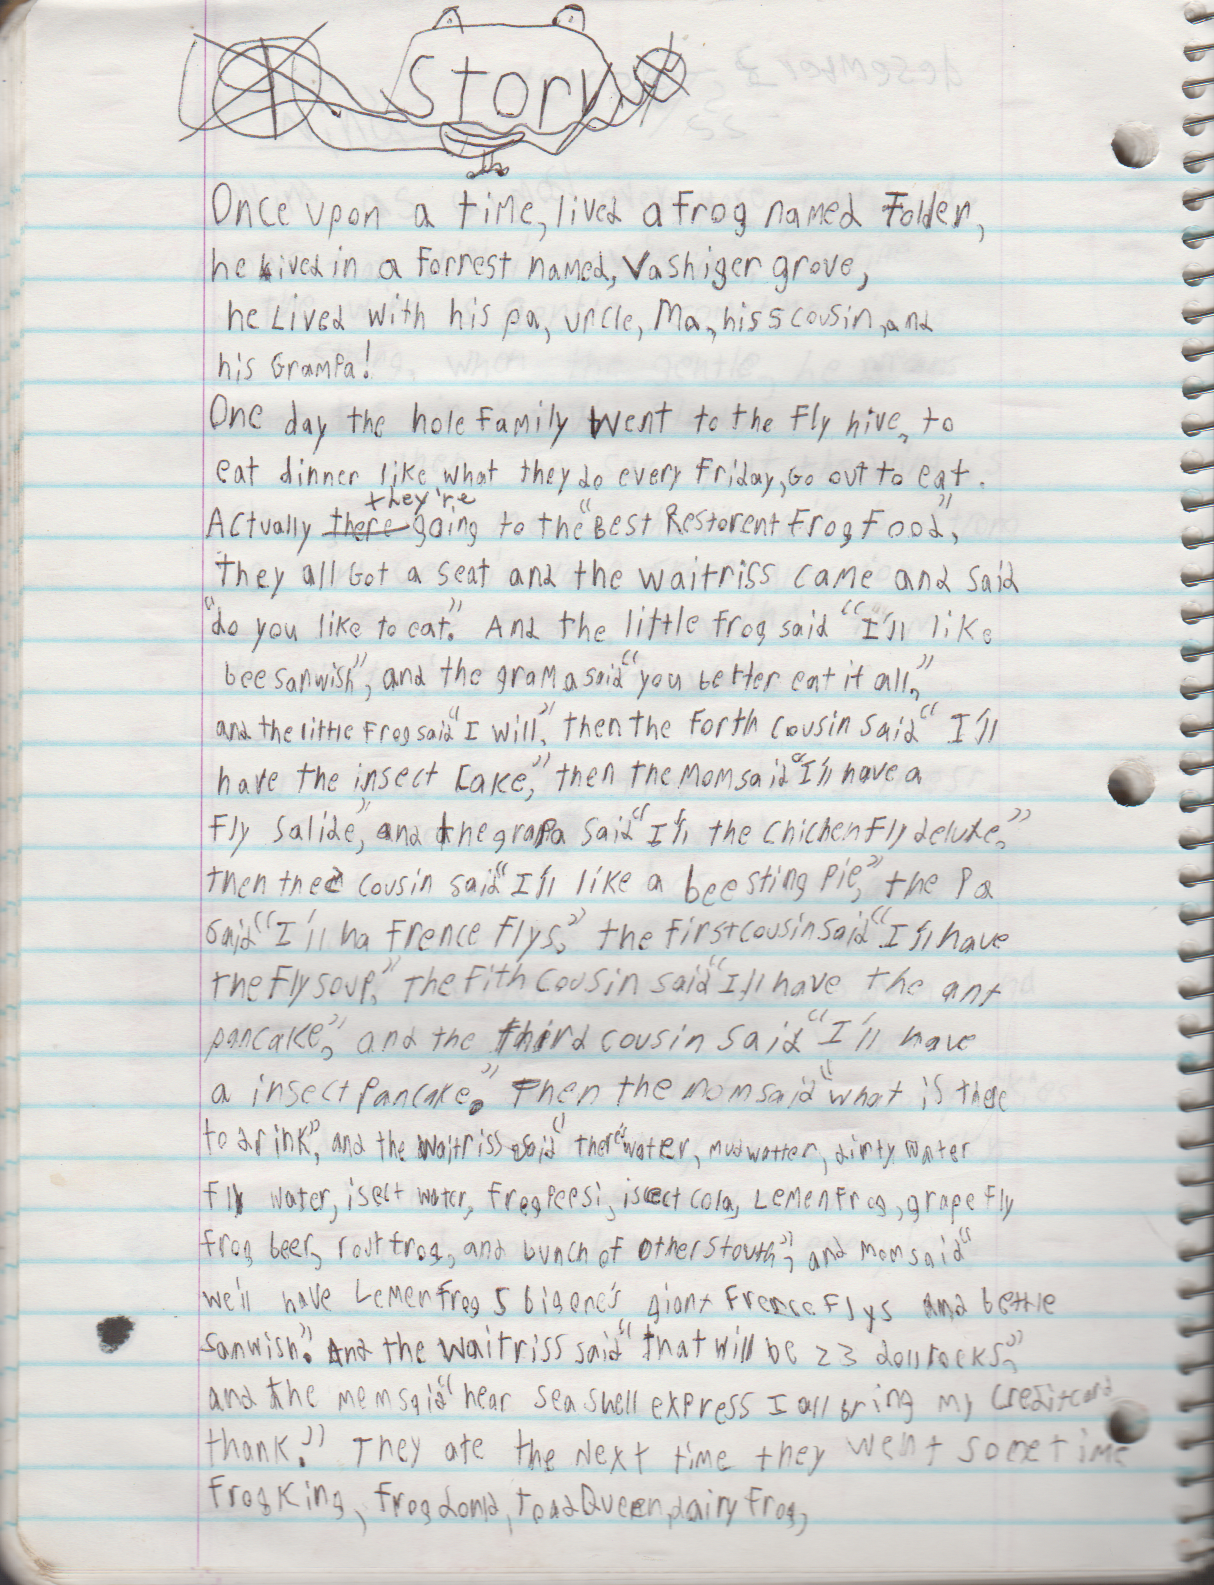 1996-08-18 - Saturday - 11 yr old Joey Arnold's School Book, dates through to 1998 apx, mostly 96, Writings, Drawings, Etc-083.png